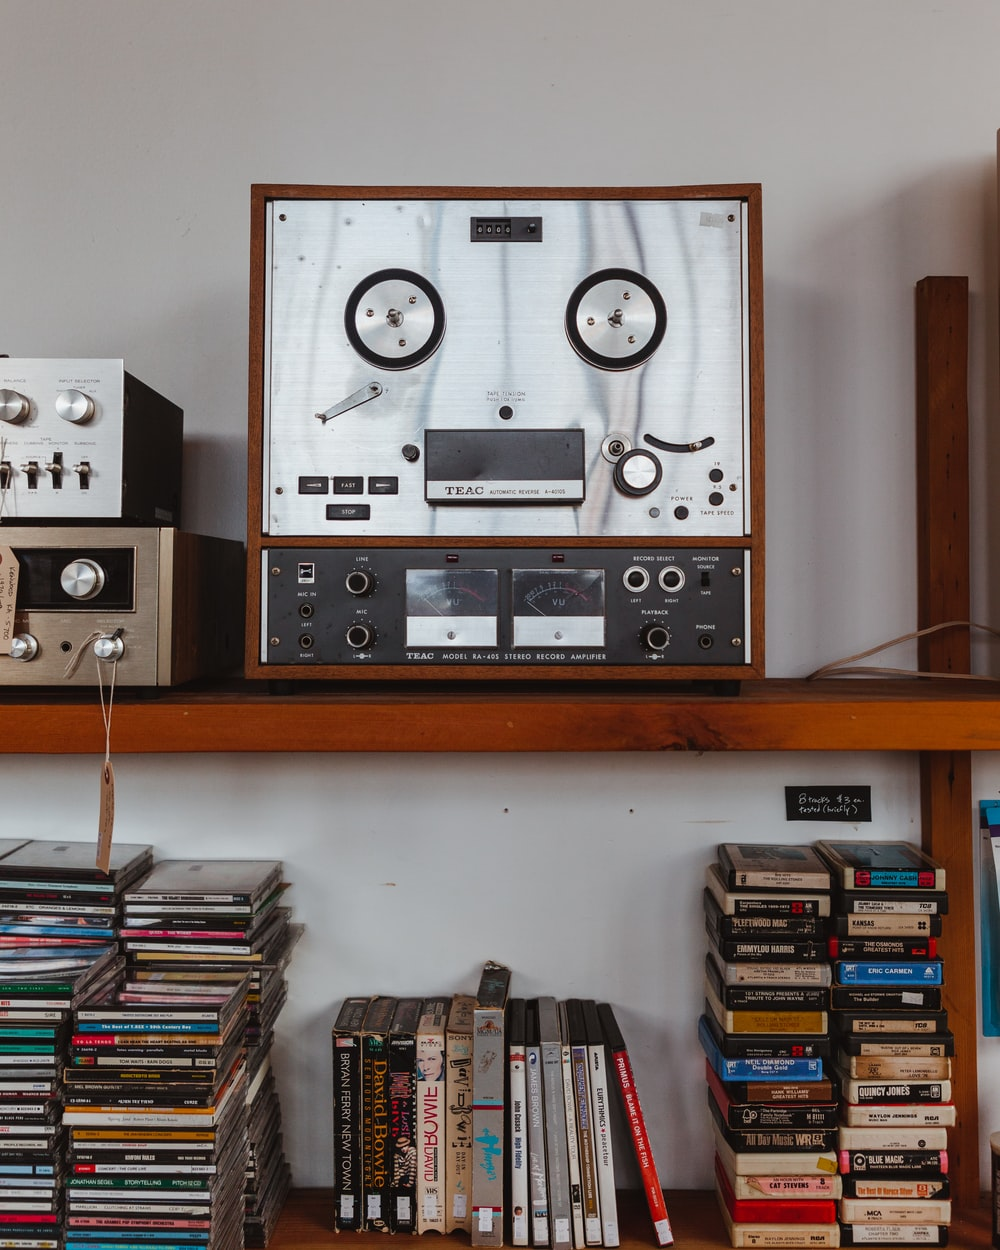 gray and black audio component on brown wooden shelf